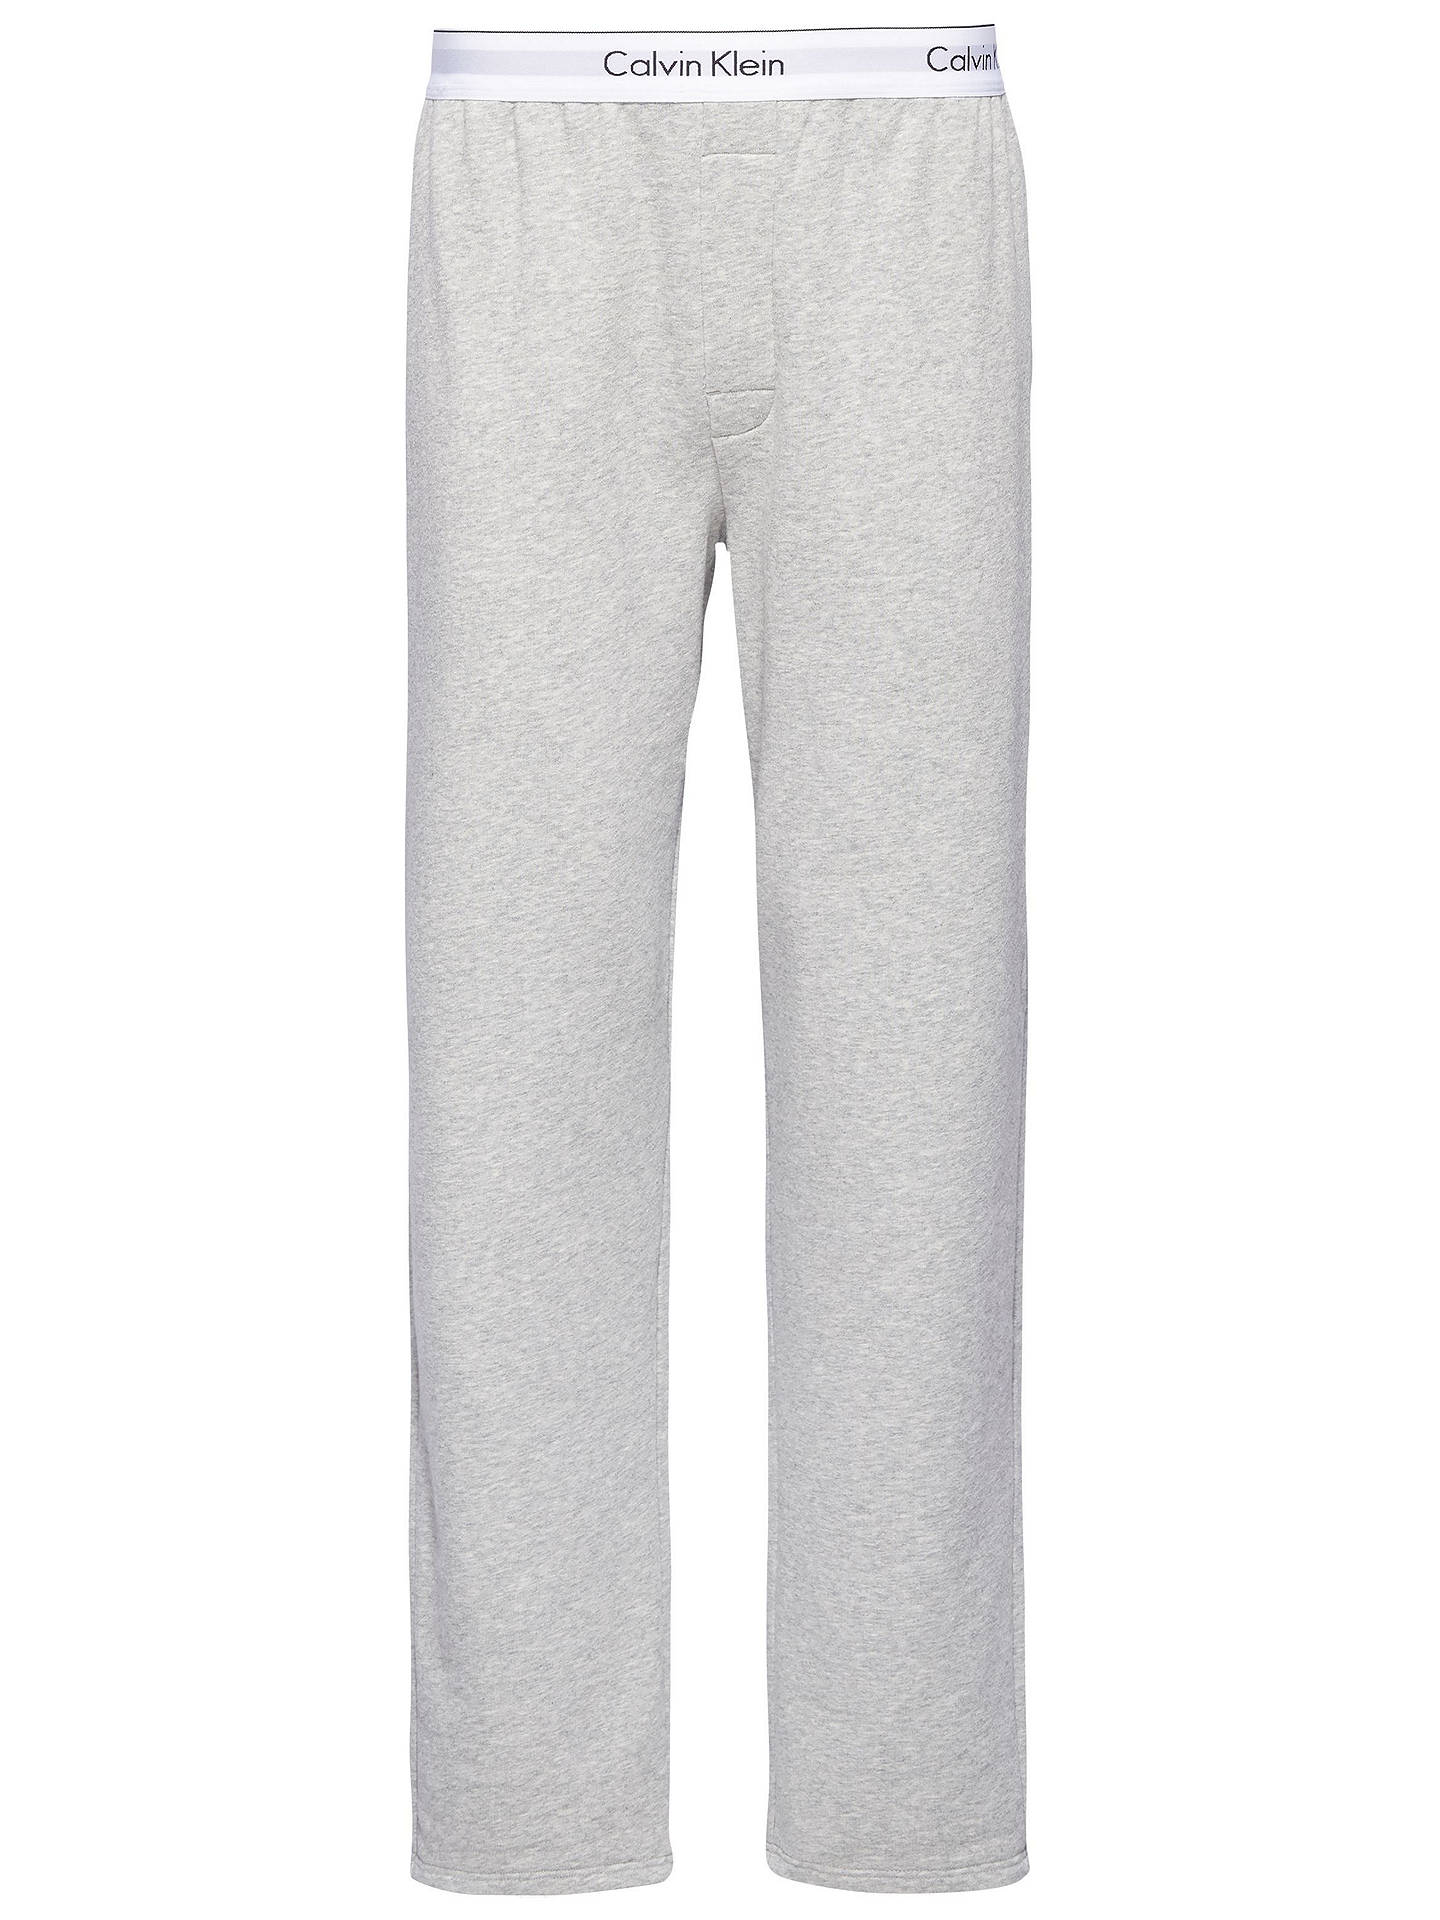 8c3b6e68a14df Buy Calvin Klein CK Modern Cotton Lounge Pants, Grey, S Online at johnlewis.